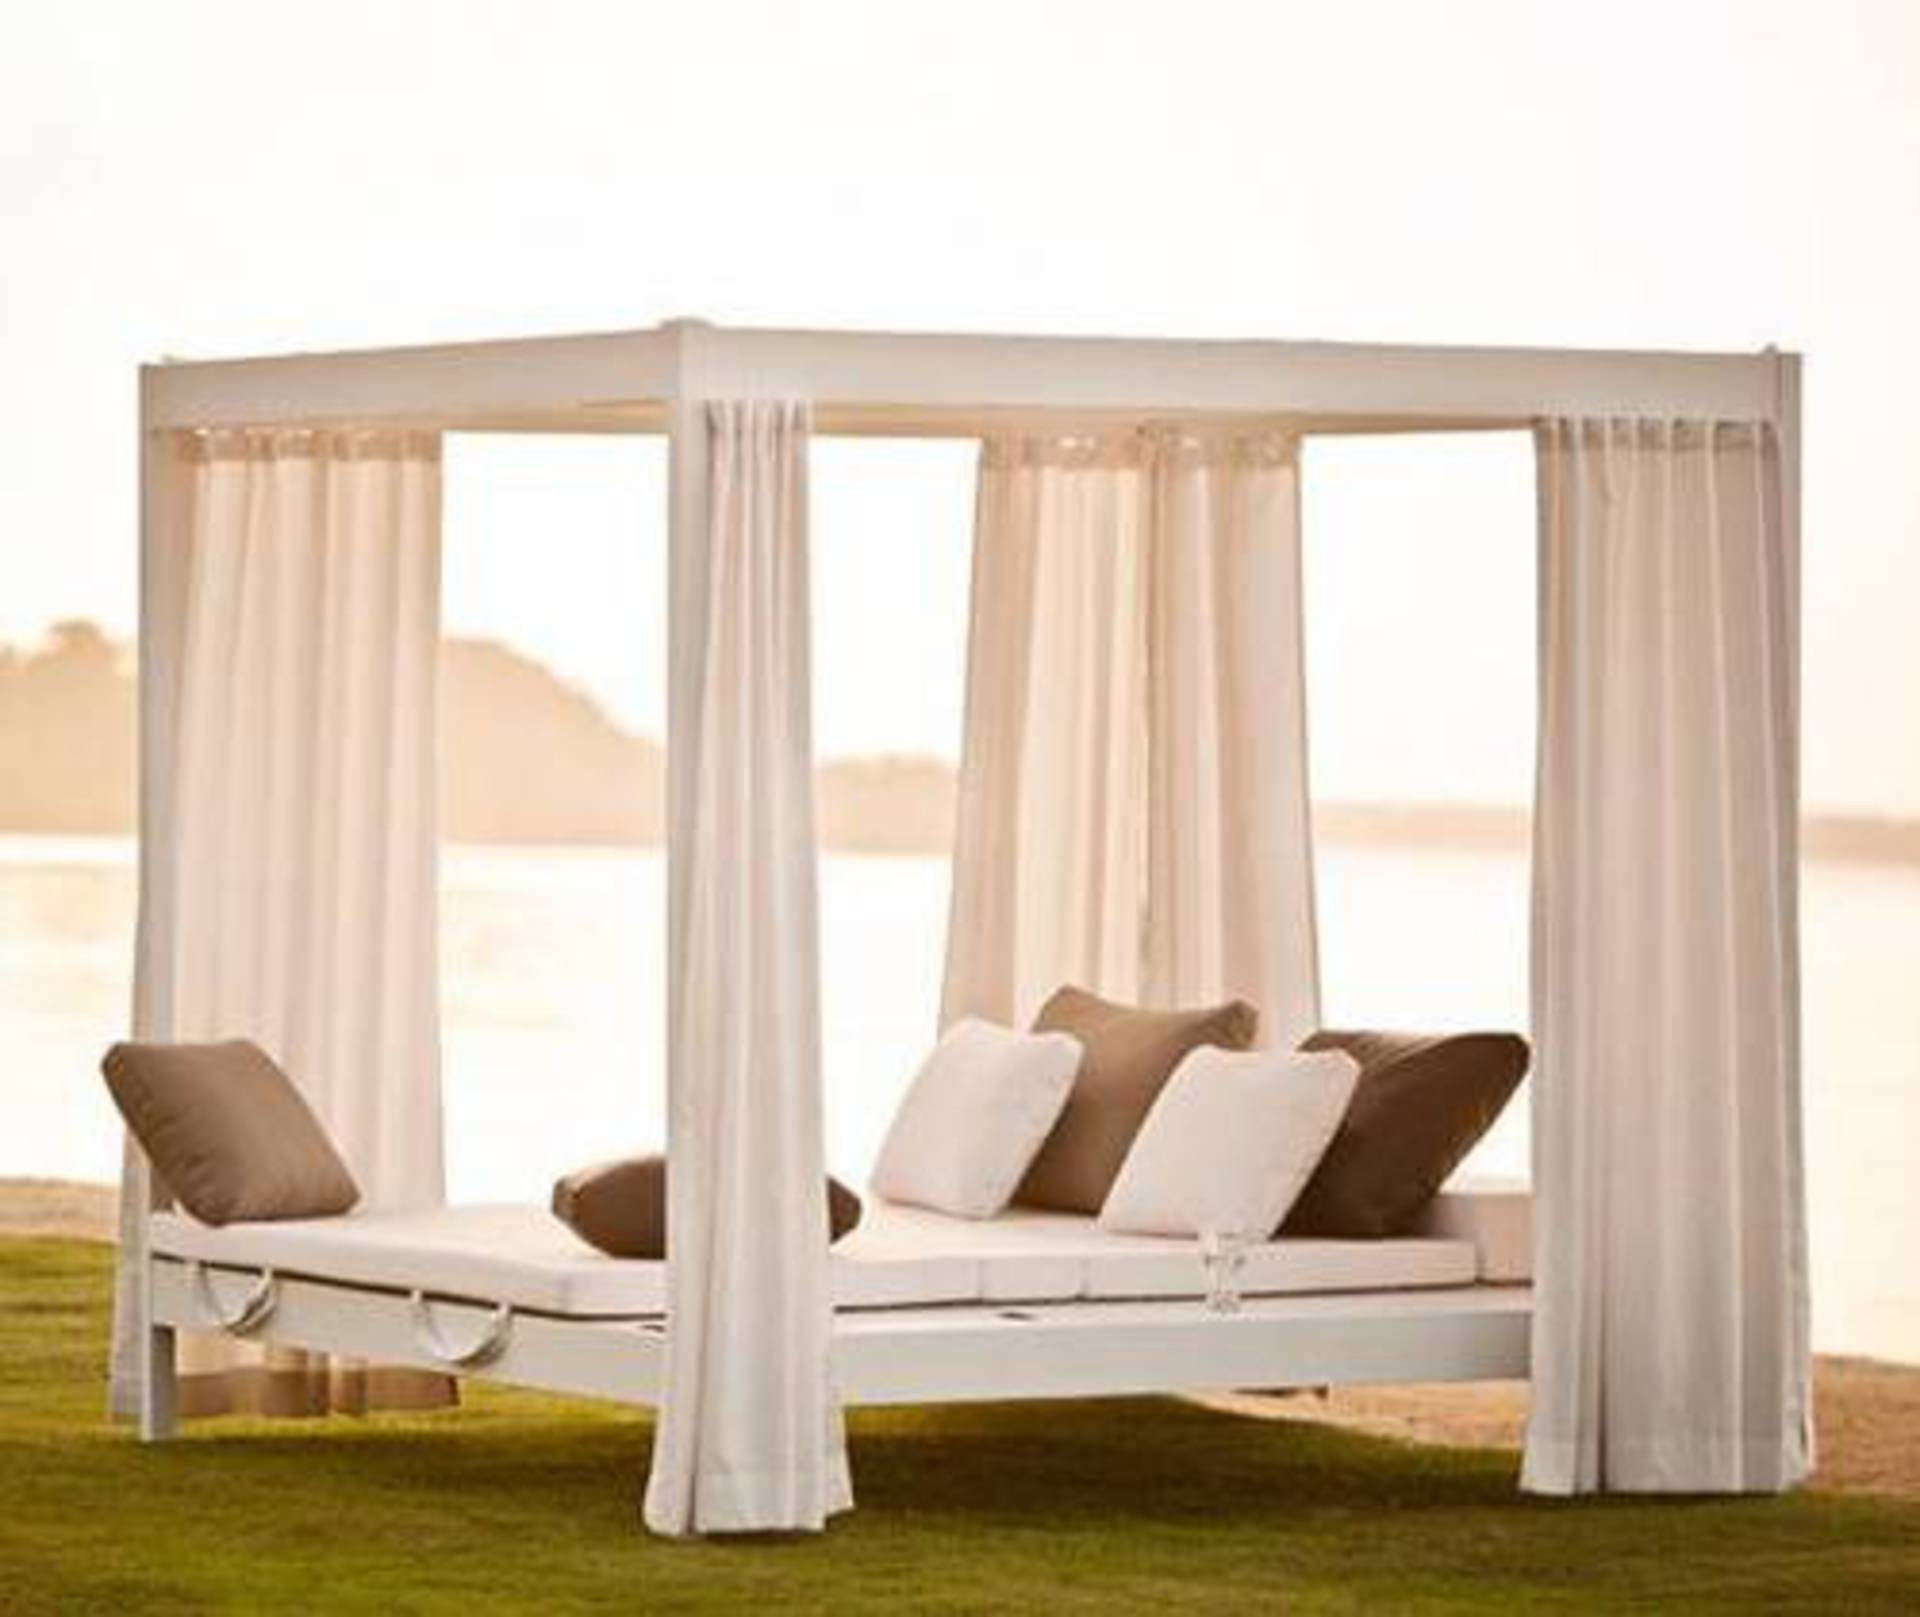 elegant outdoor furniture. Beautiful And Elegant Outdoor Furniture By Dedon U